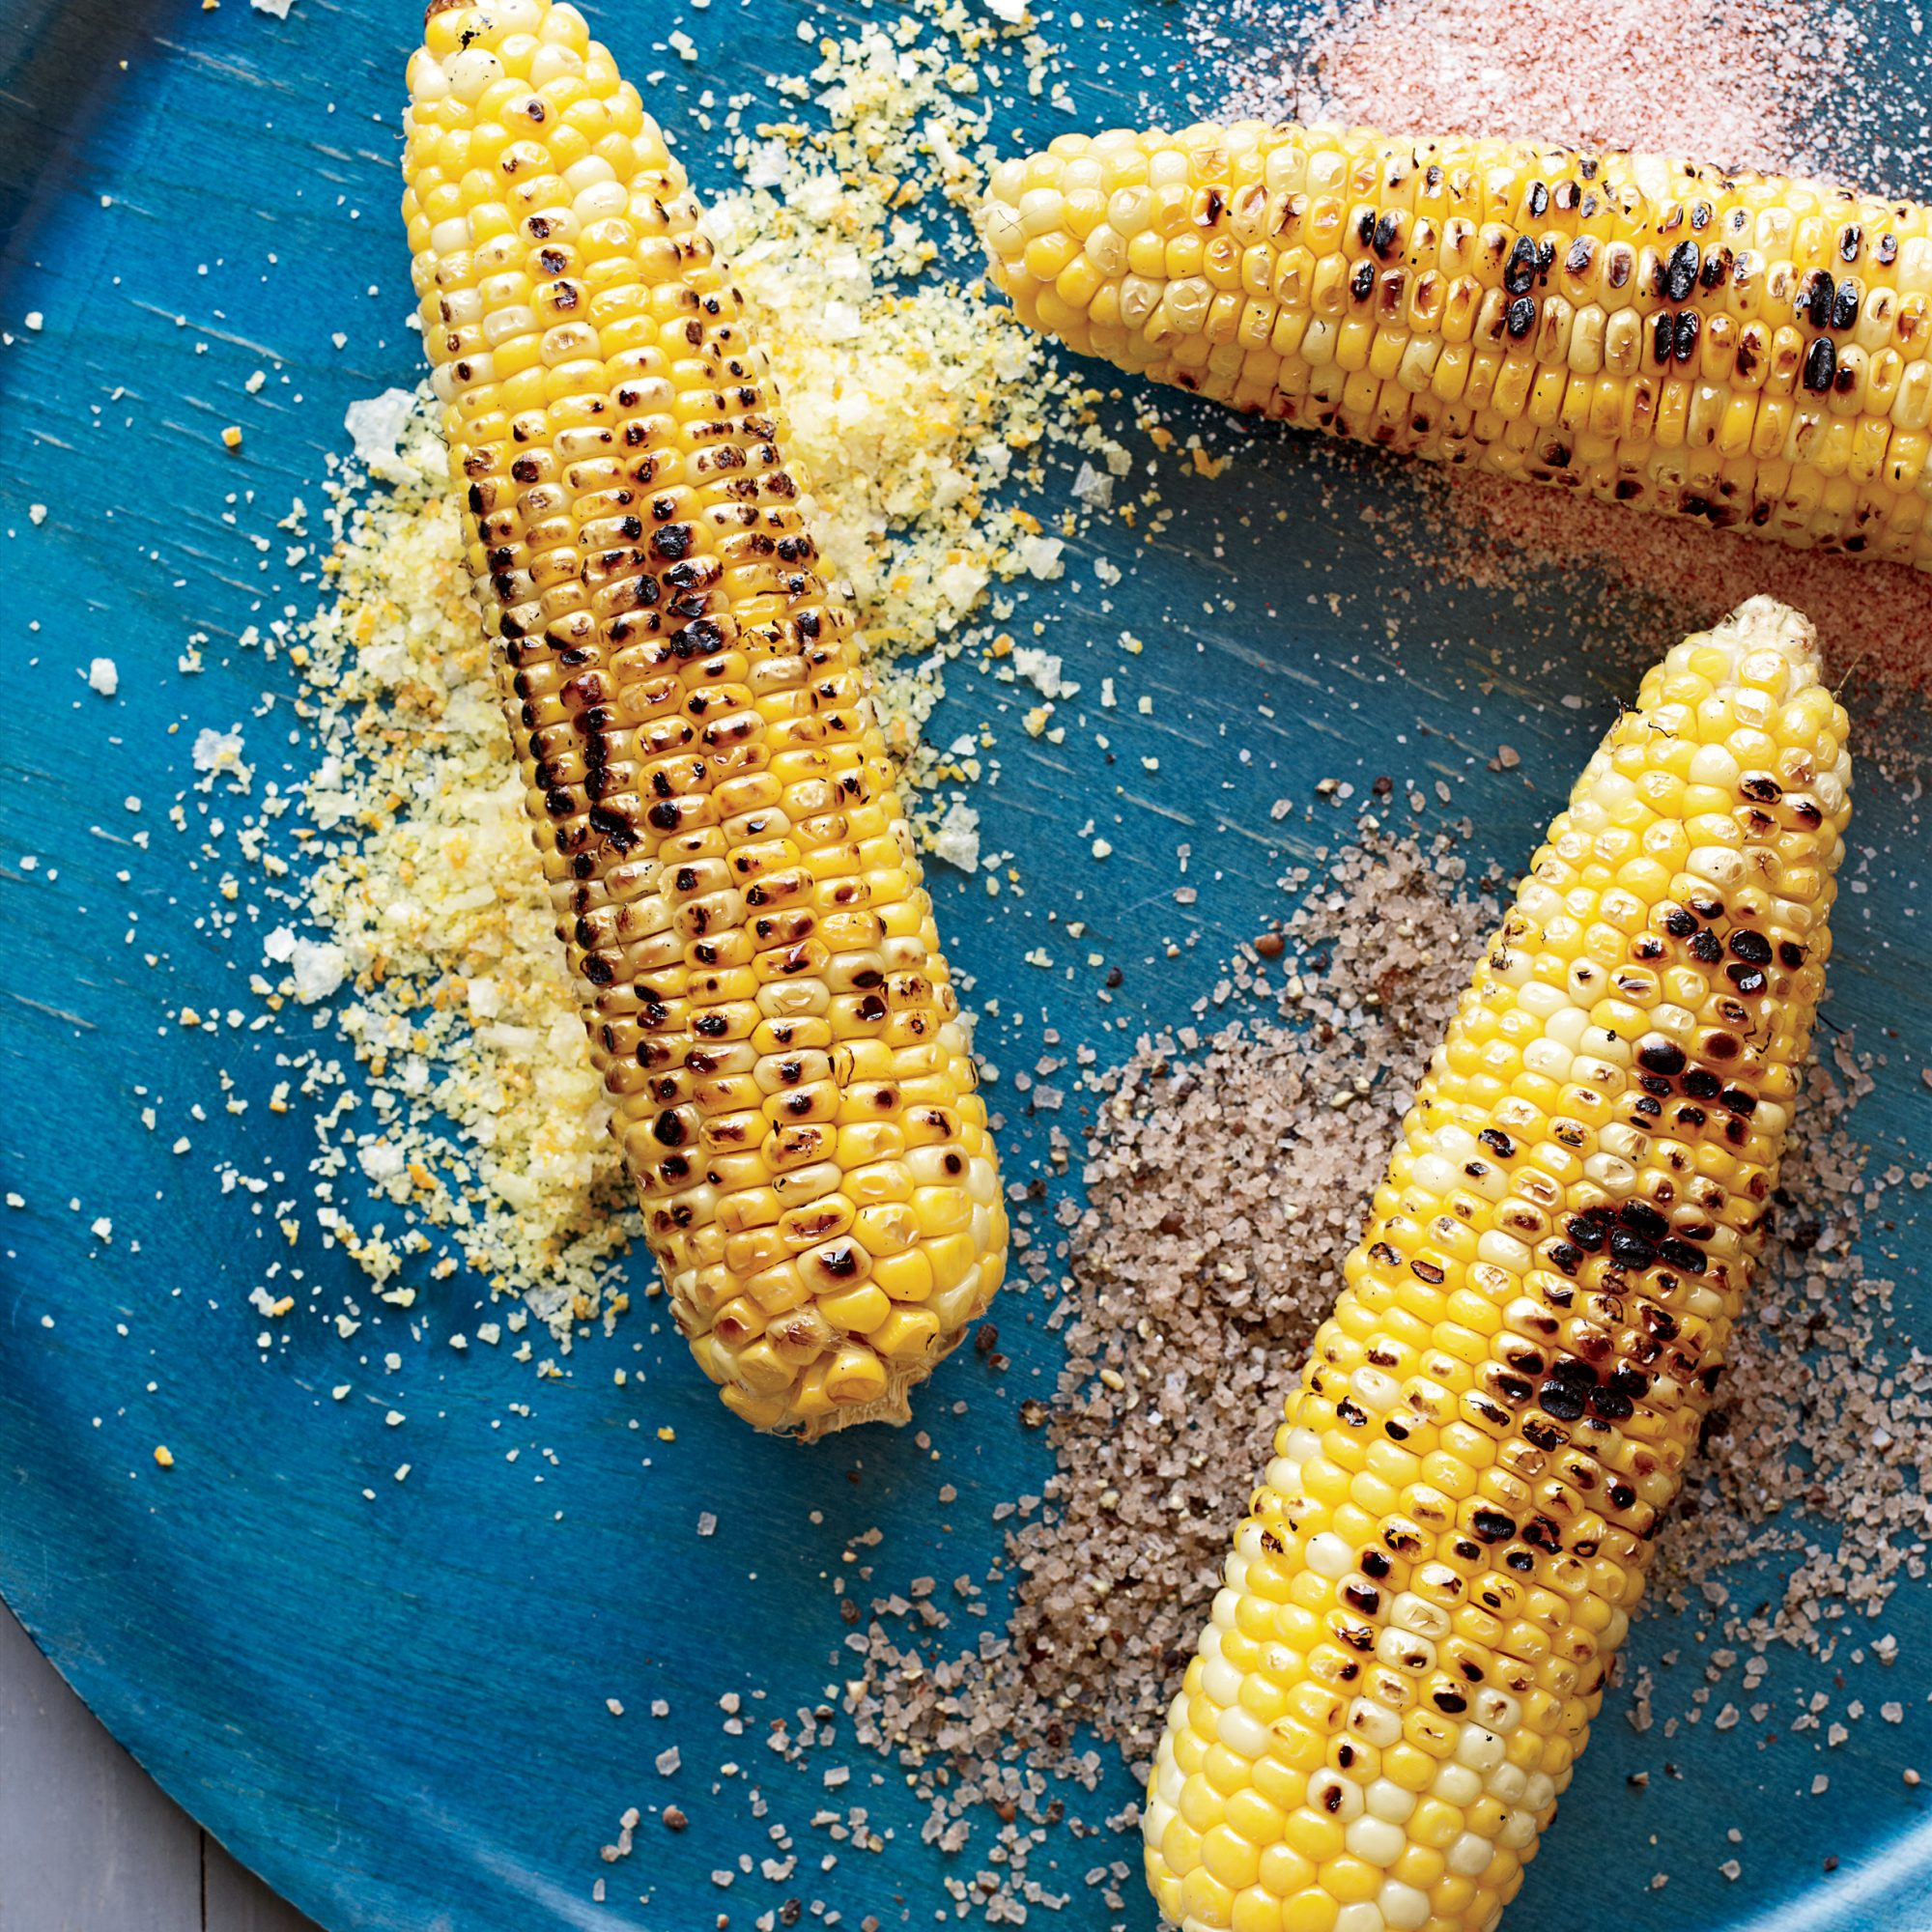 201109-r-corn-on-the-cob-with-seasoned-salts.jpg